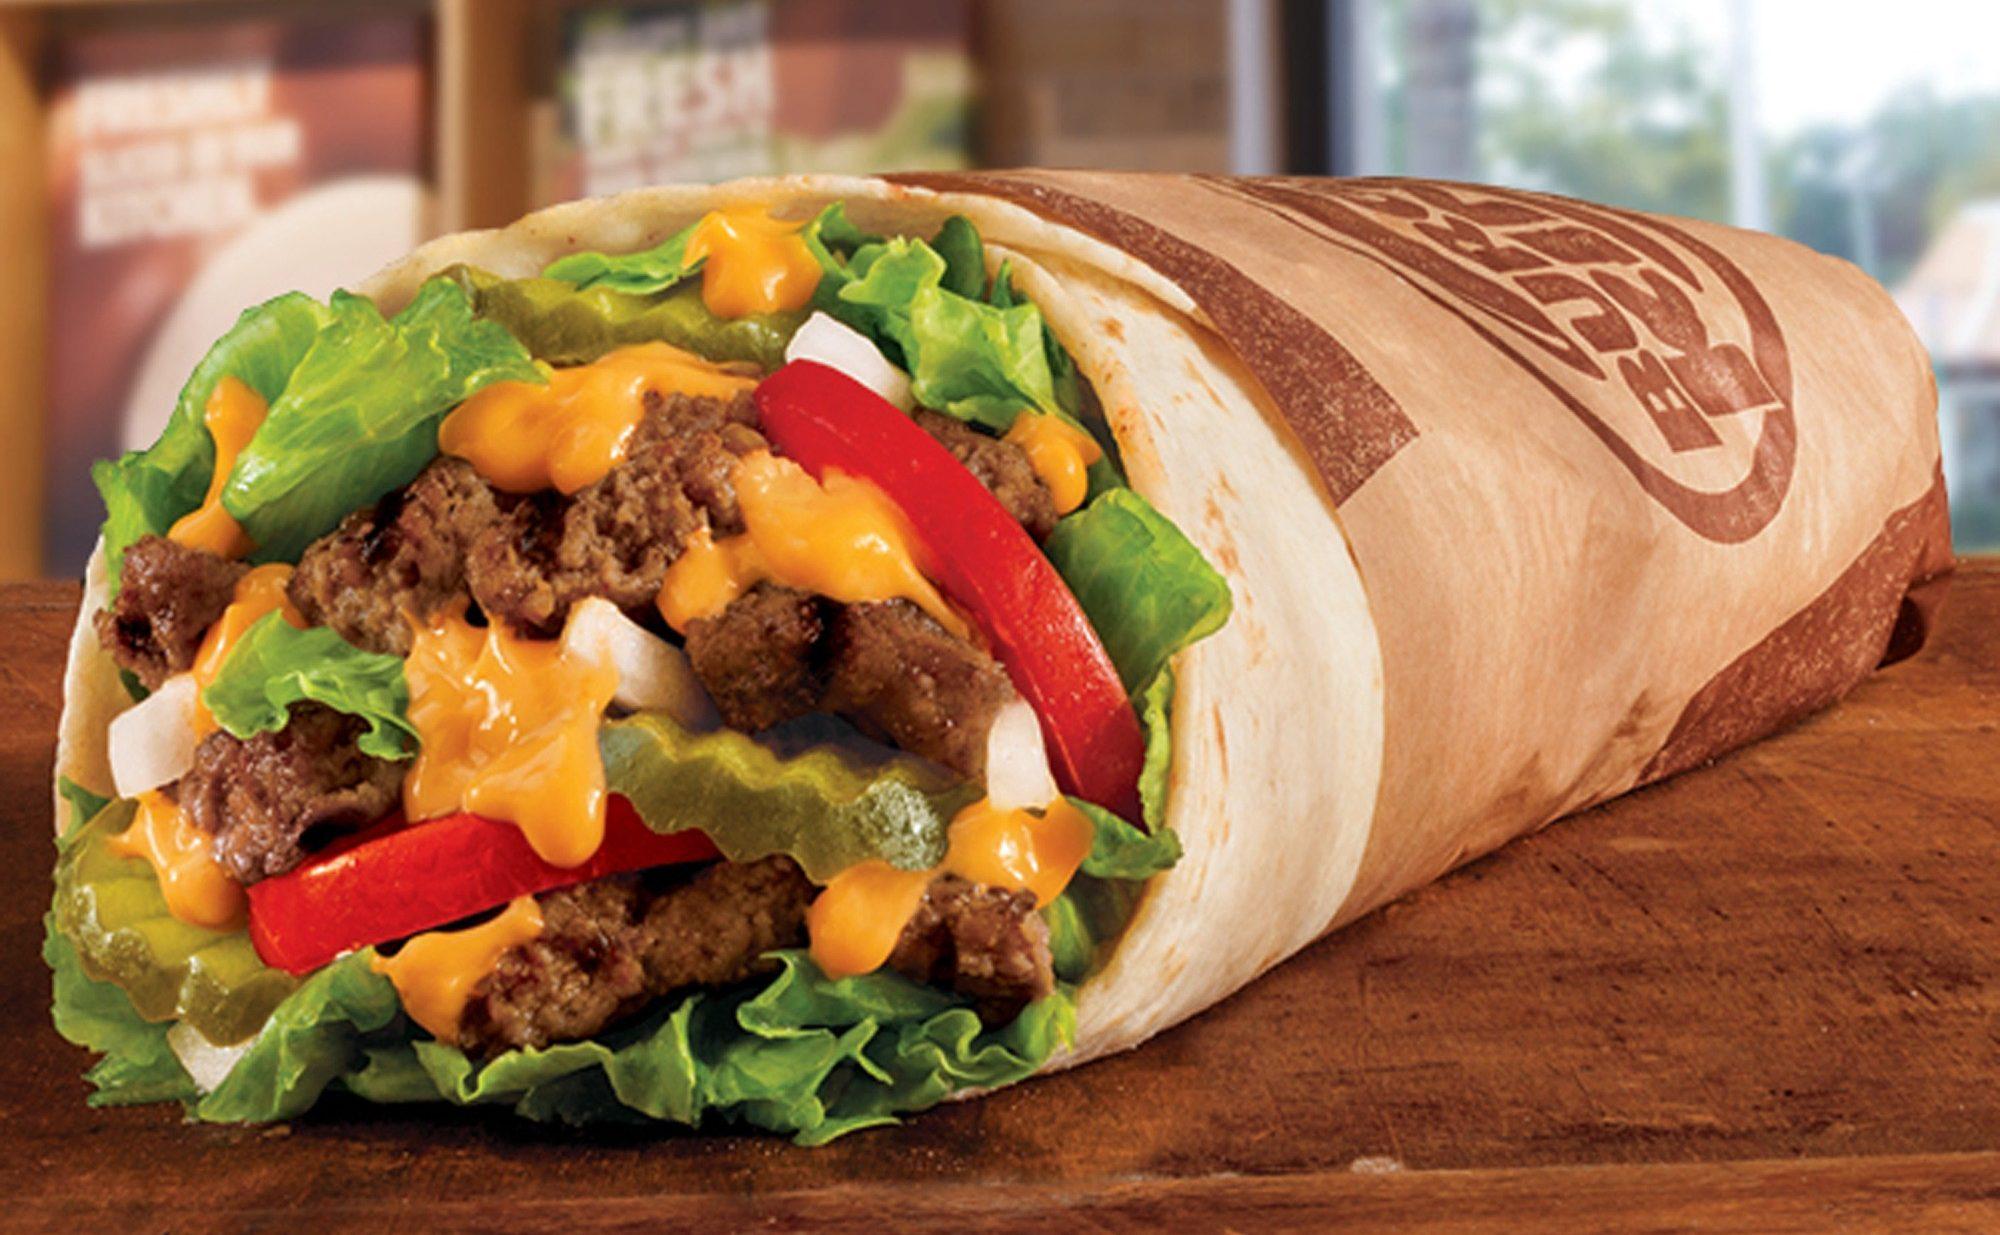 Burger King's Whopperito